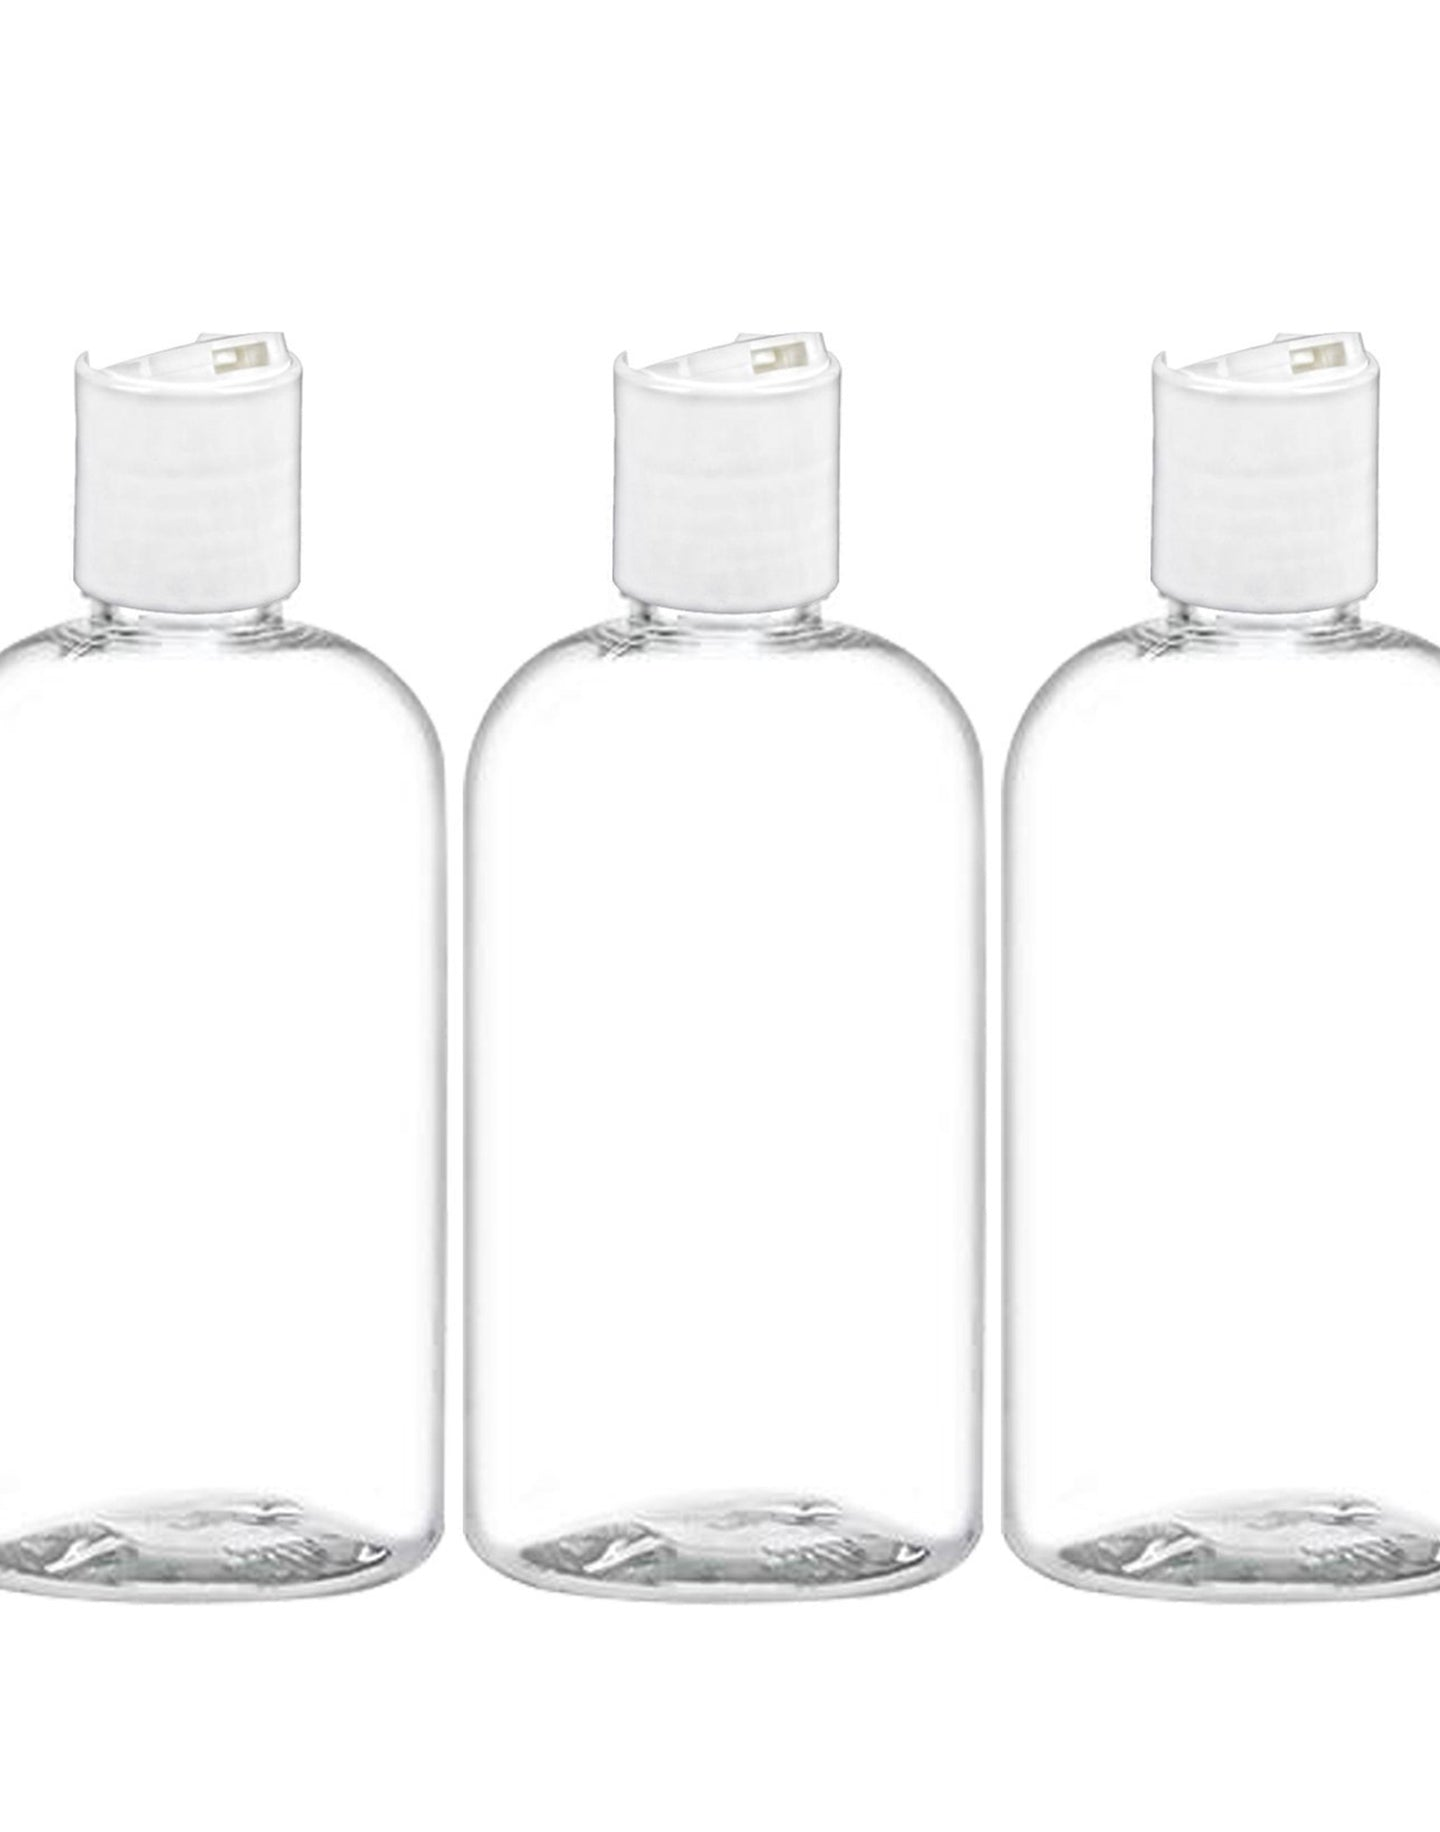 MoYo Natural Labs 8 oz Boston Travel Bottles, Empty Travel Containers with Disc Caps, BPA Free PET Plastic Refillable Toiletry/Cosmetic Bottle (Pack of 3, Clear)